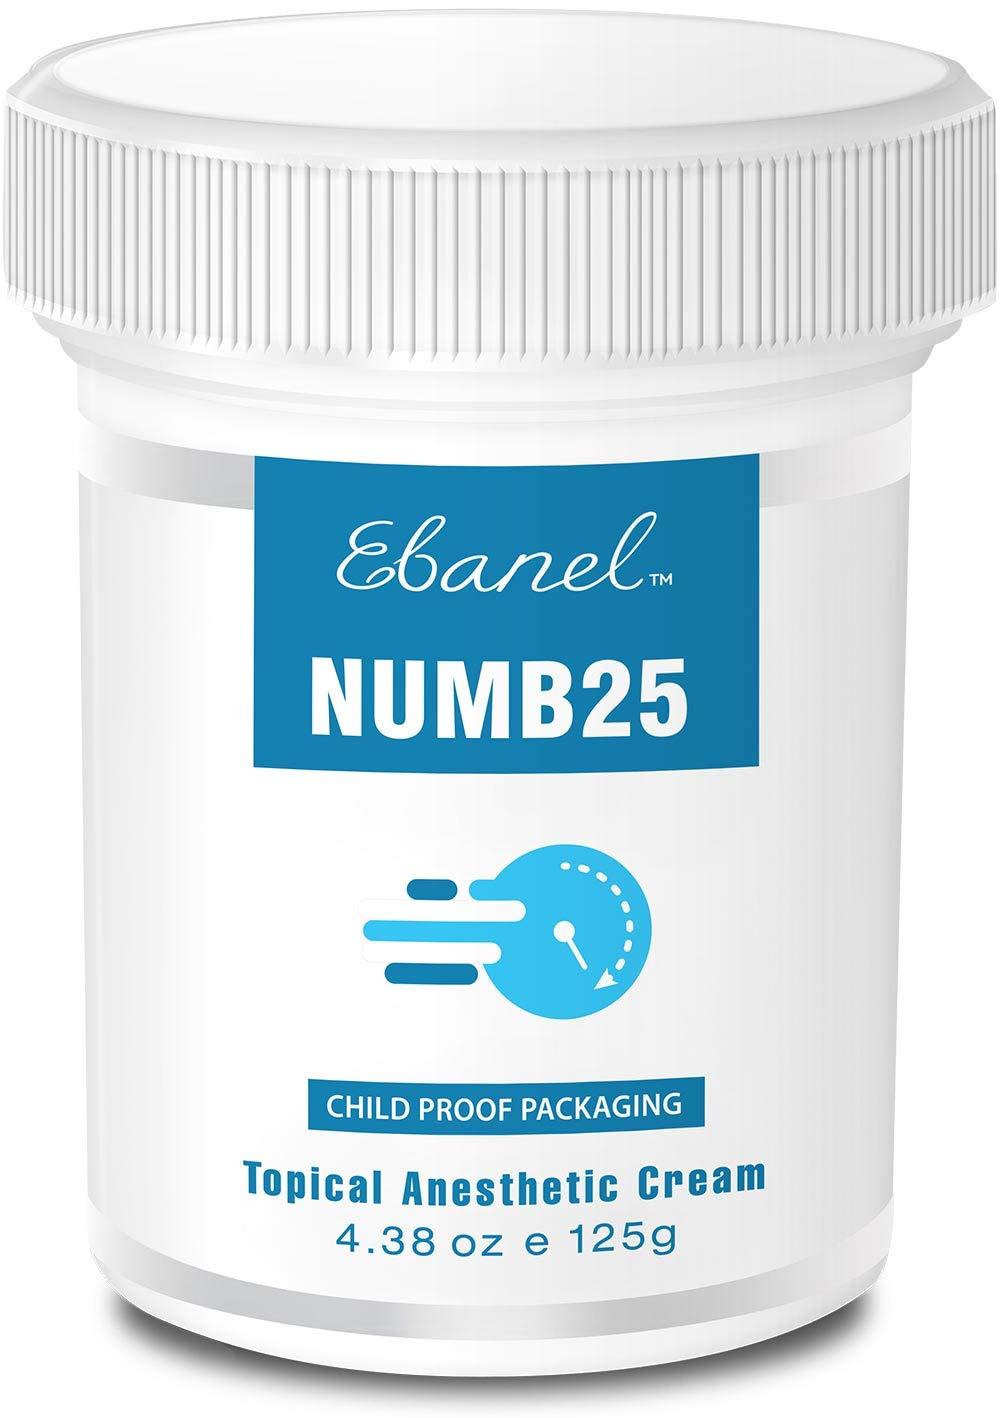 Numb25 Max Strength Lidocaine 5% Topical Numbing Cream for Tattoo,  Microneedling, Laser Hair